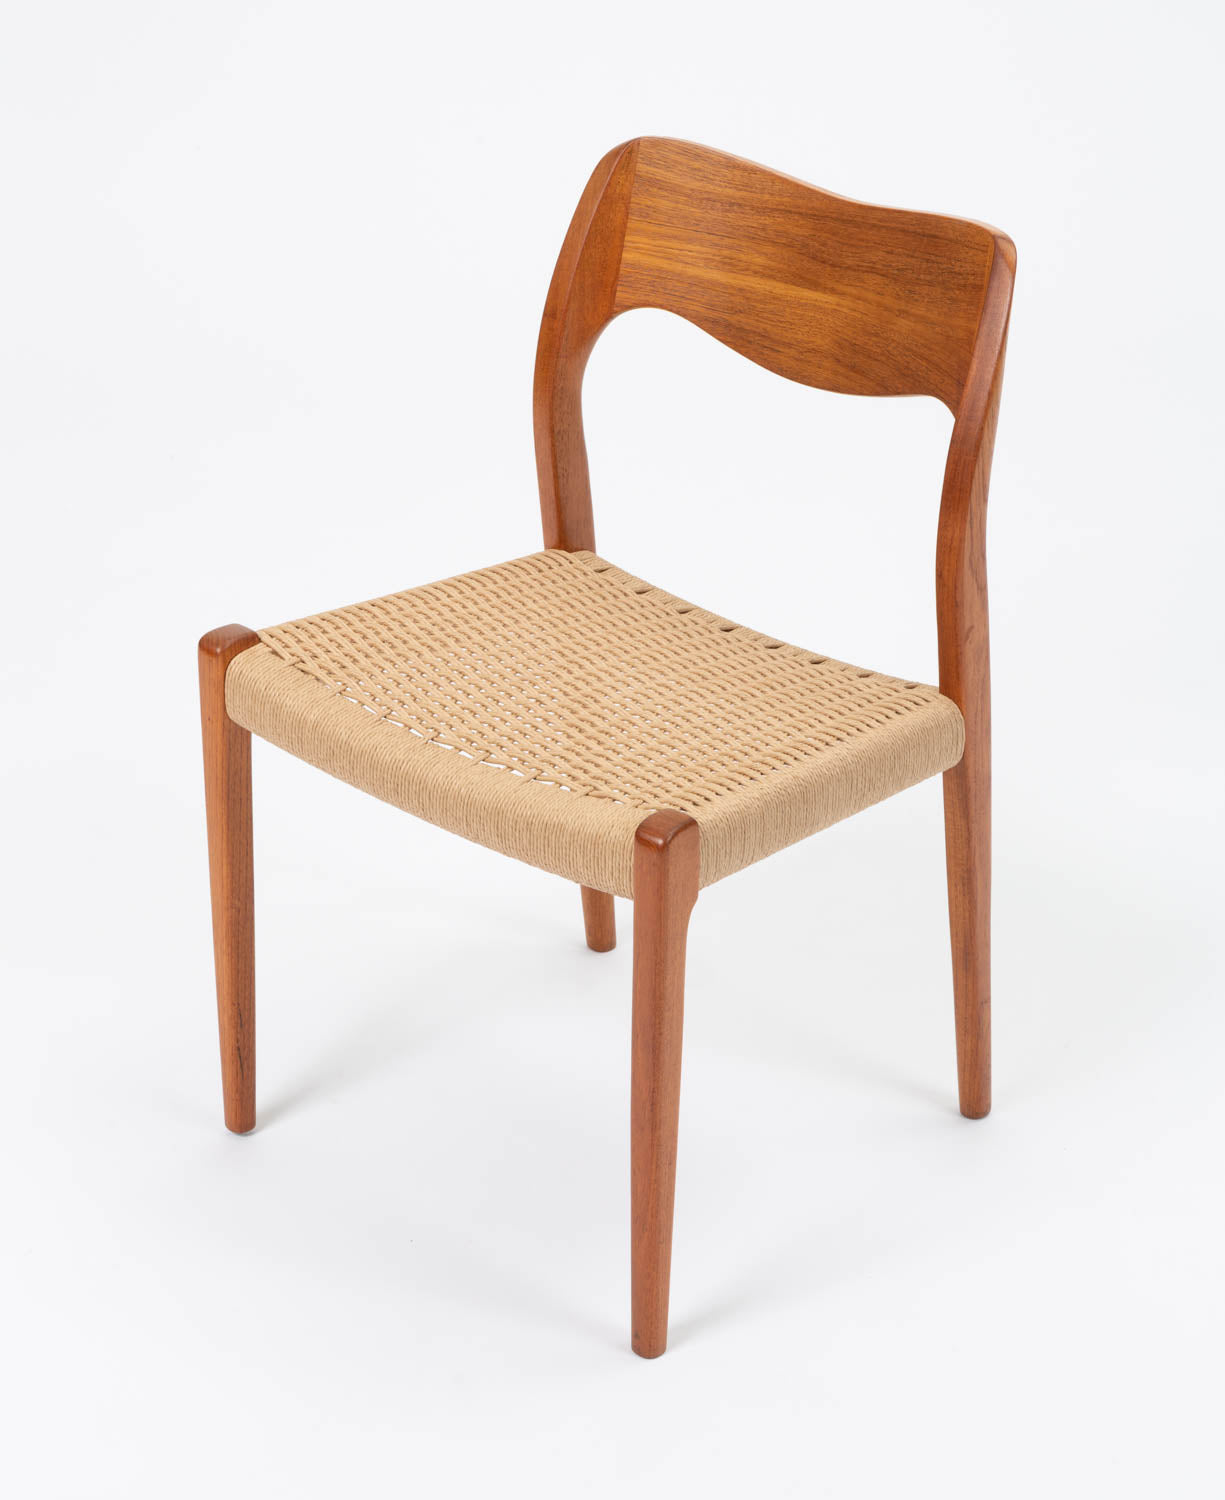 Single Niels Møller No. 71 Teak Dining Chair